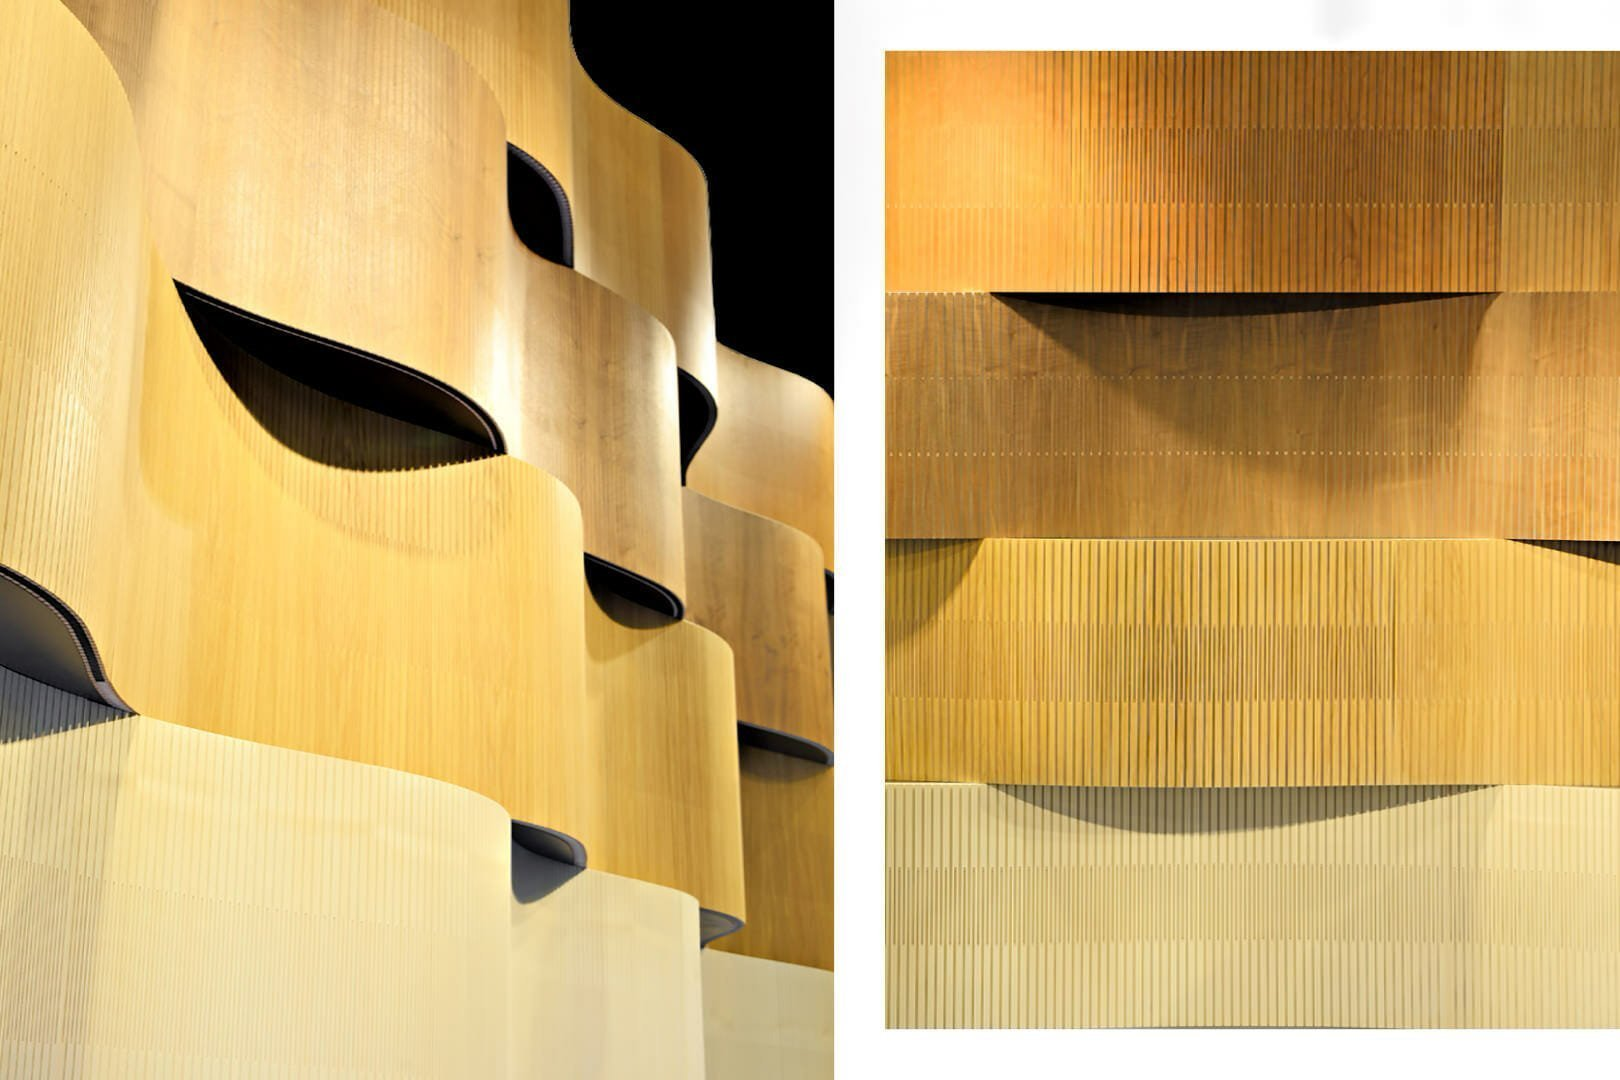 curve-wall-wood-interzum-01